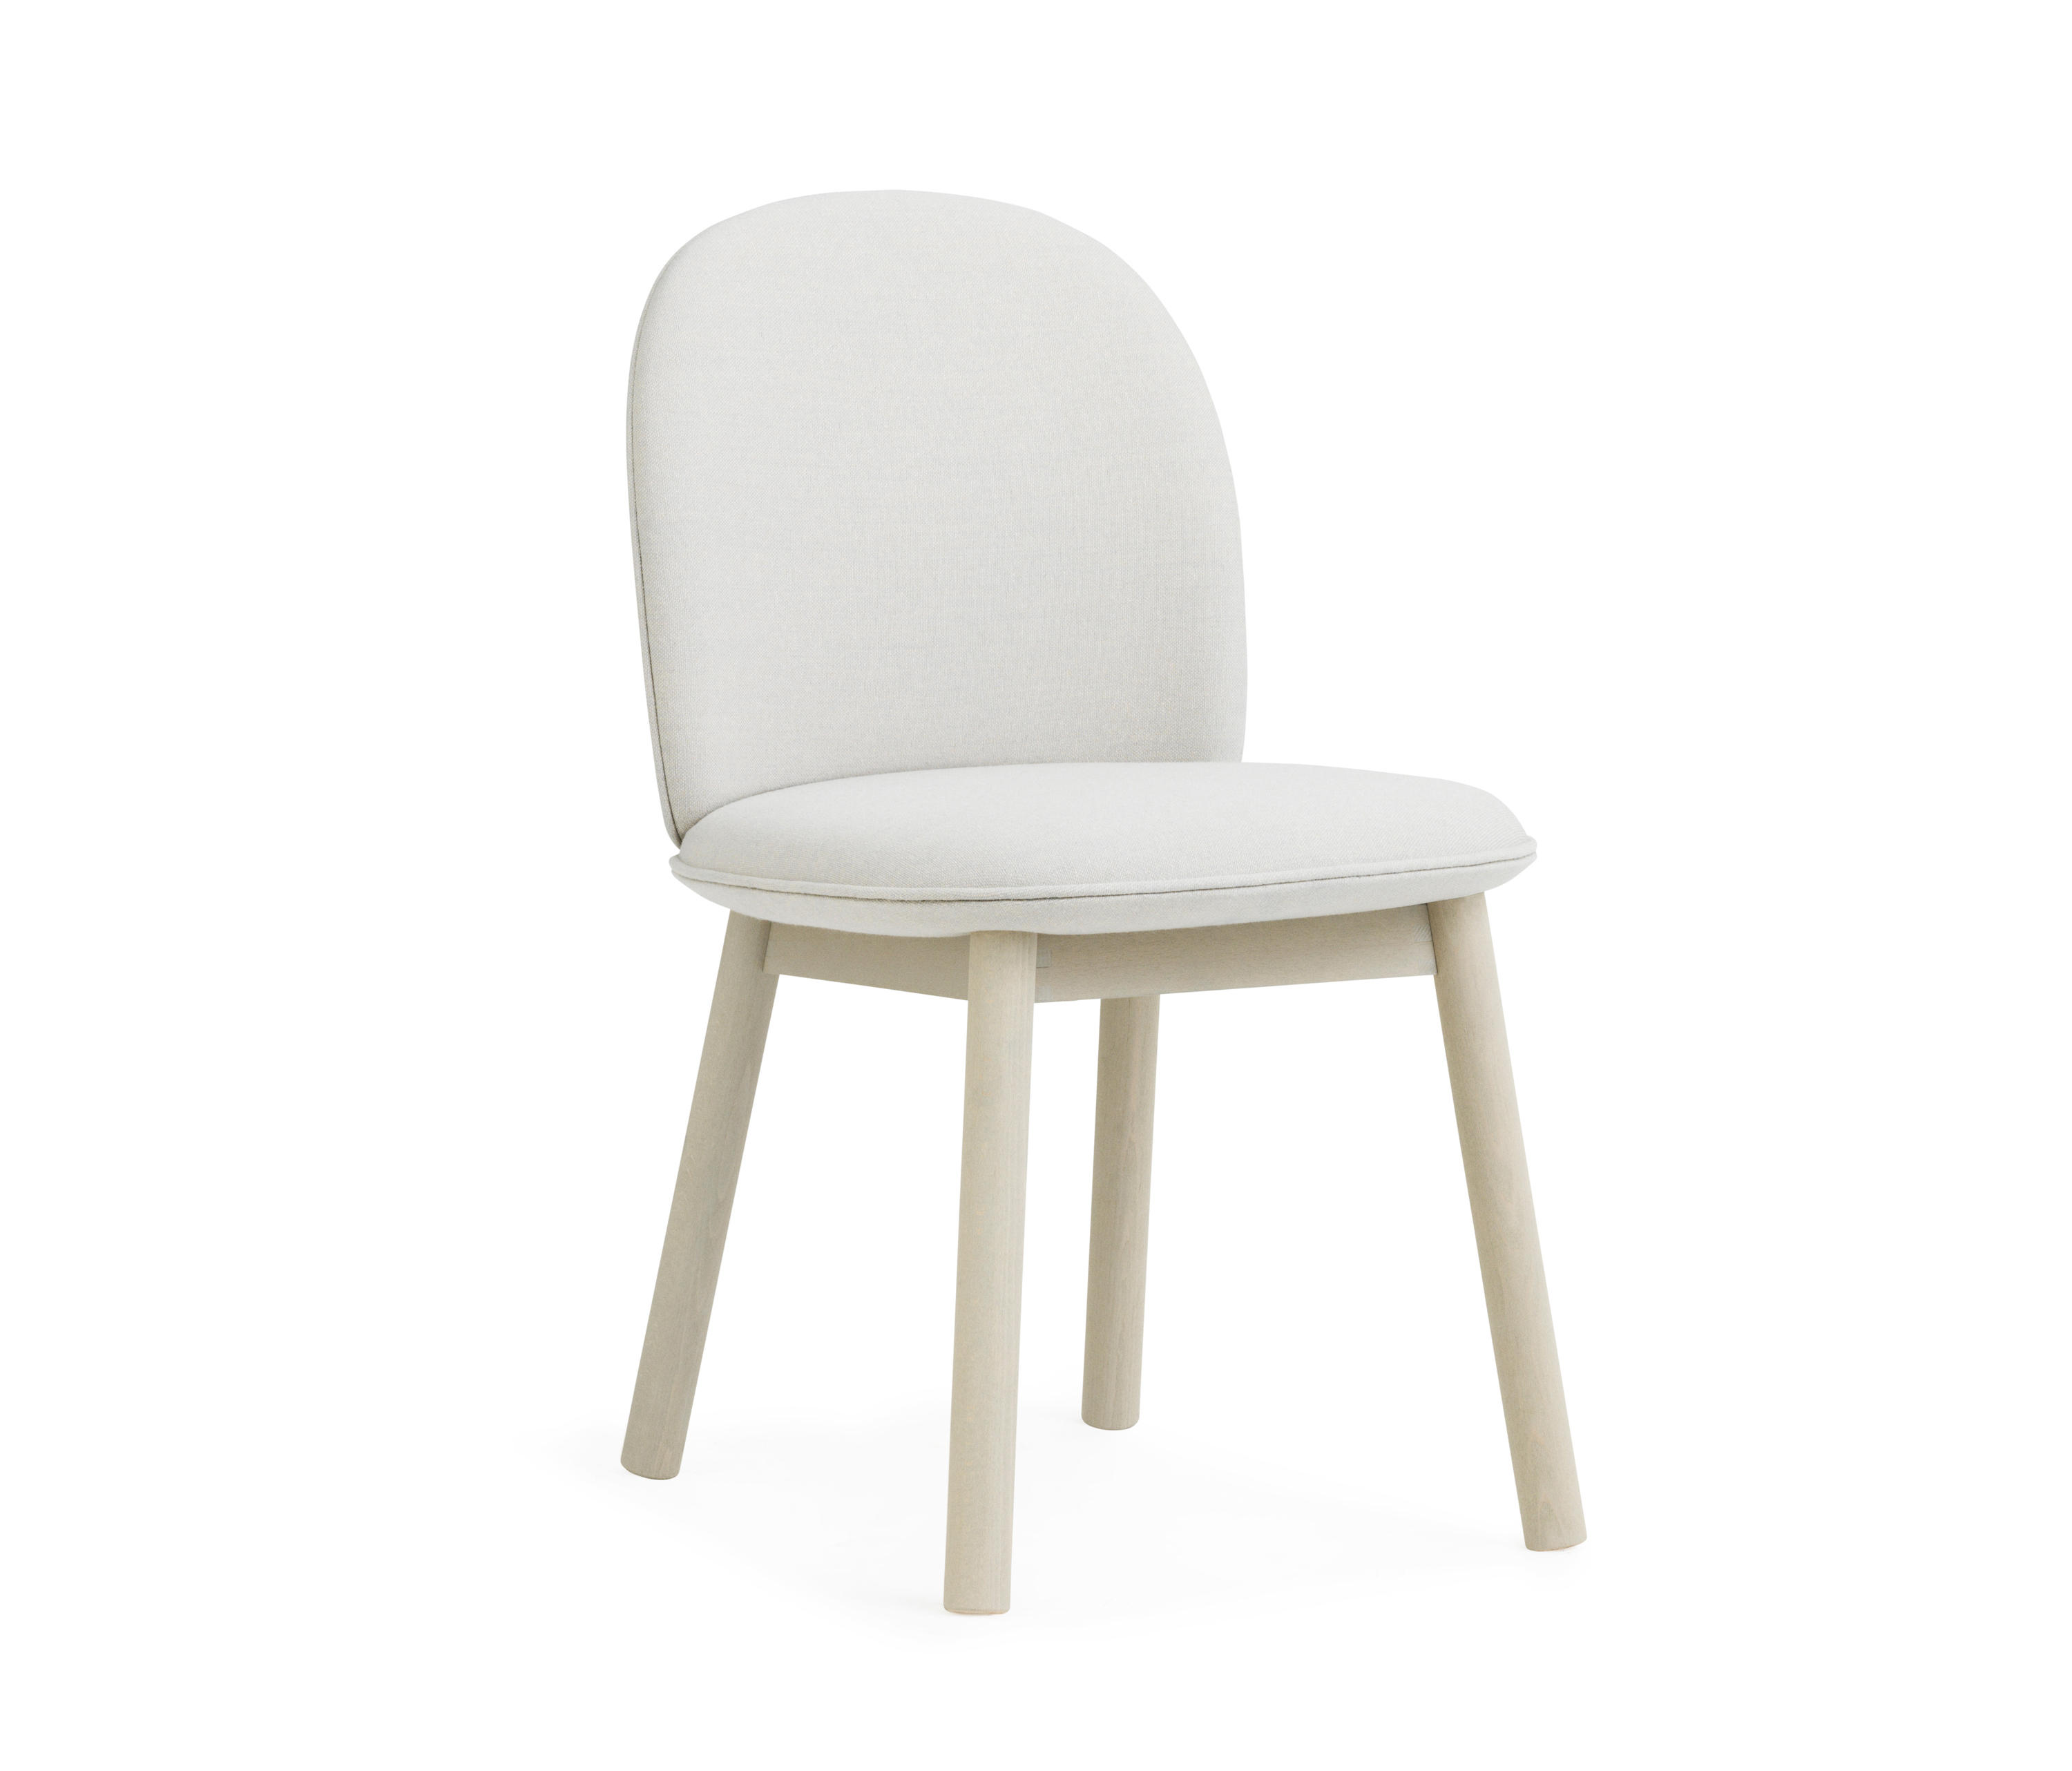 Genial Ace Dining Chair By Normann Copenhagen